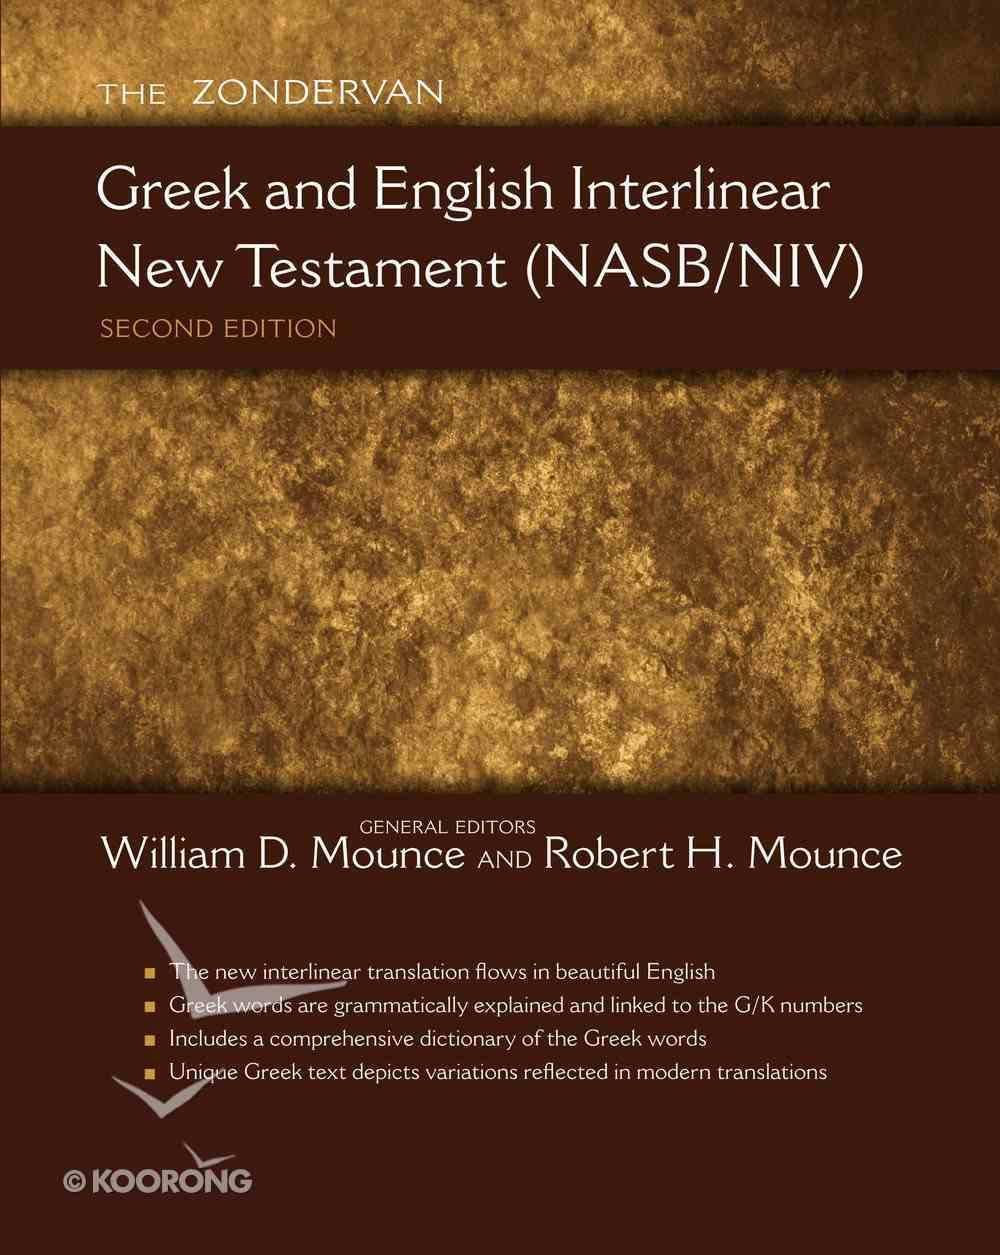 The Zondervan Greek and English Interlinear New Testament (Nasb/niv) Hardback